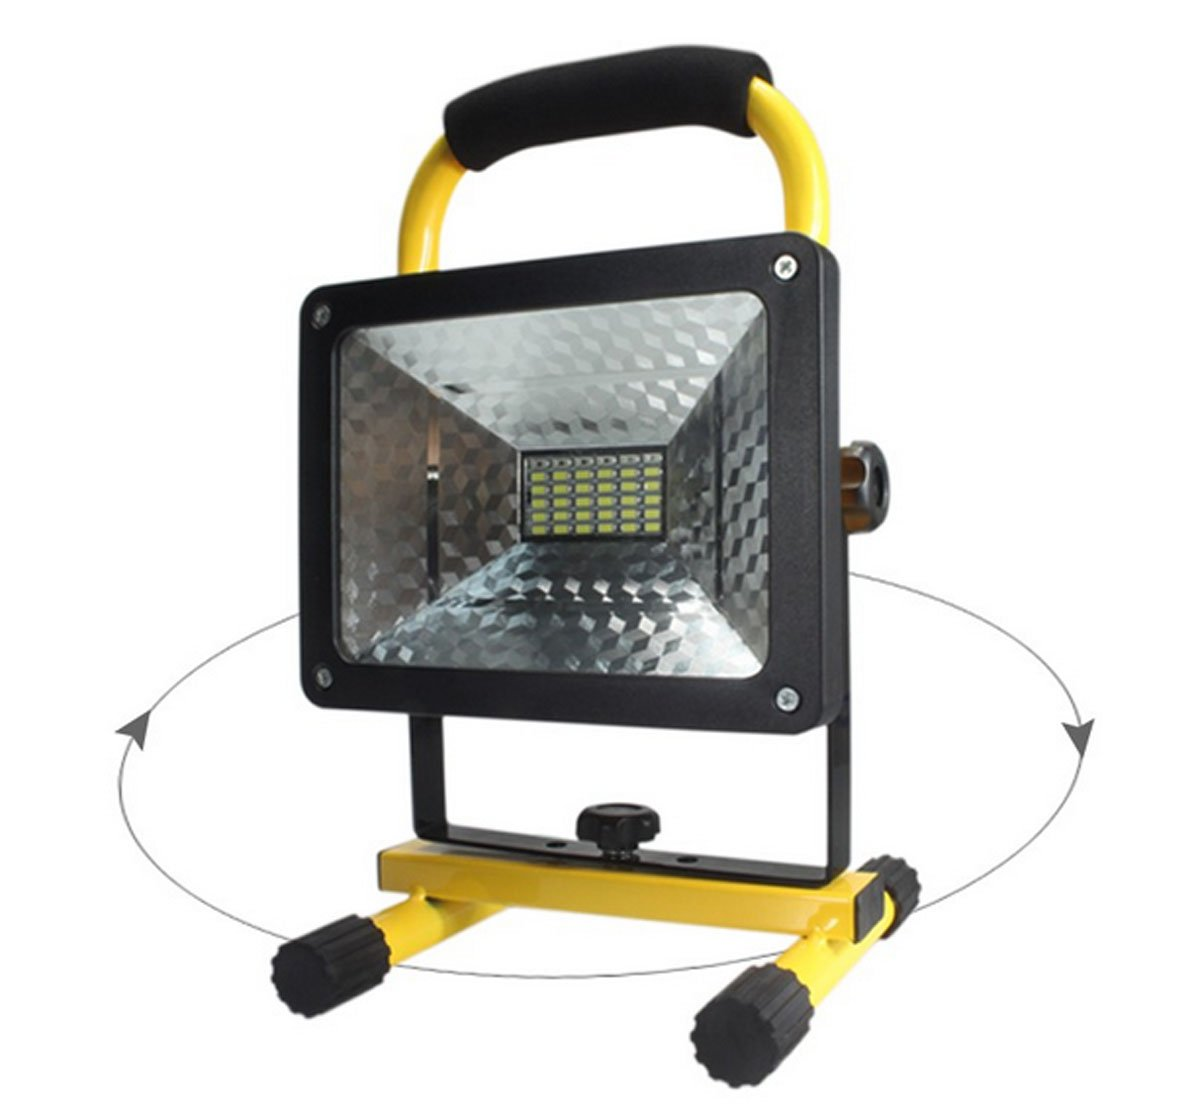 2400 lumens, 50 Watts, 36 LED. Heavy Duty LED Flood/Shop Light, Portable Rechargeable Cordless LED Work Light Flood Light, Durable Emergency Light